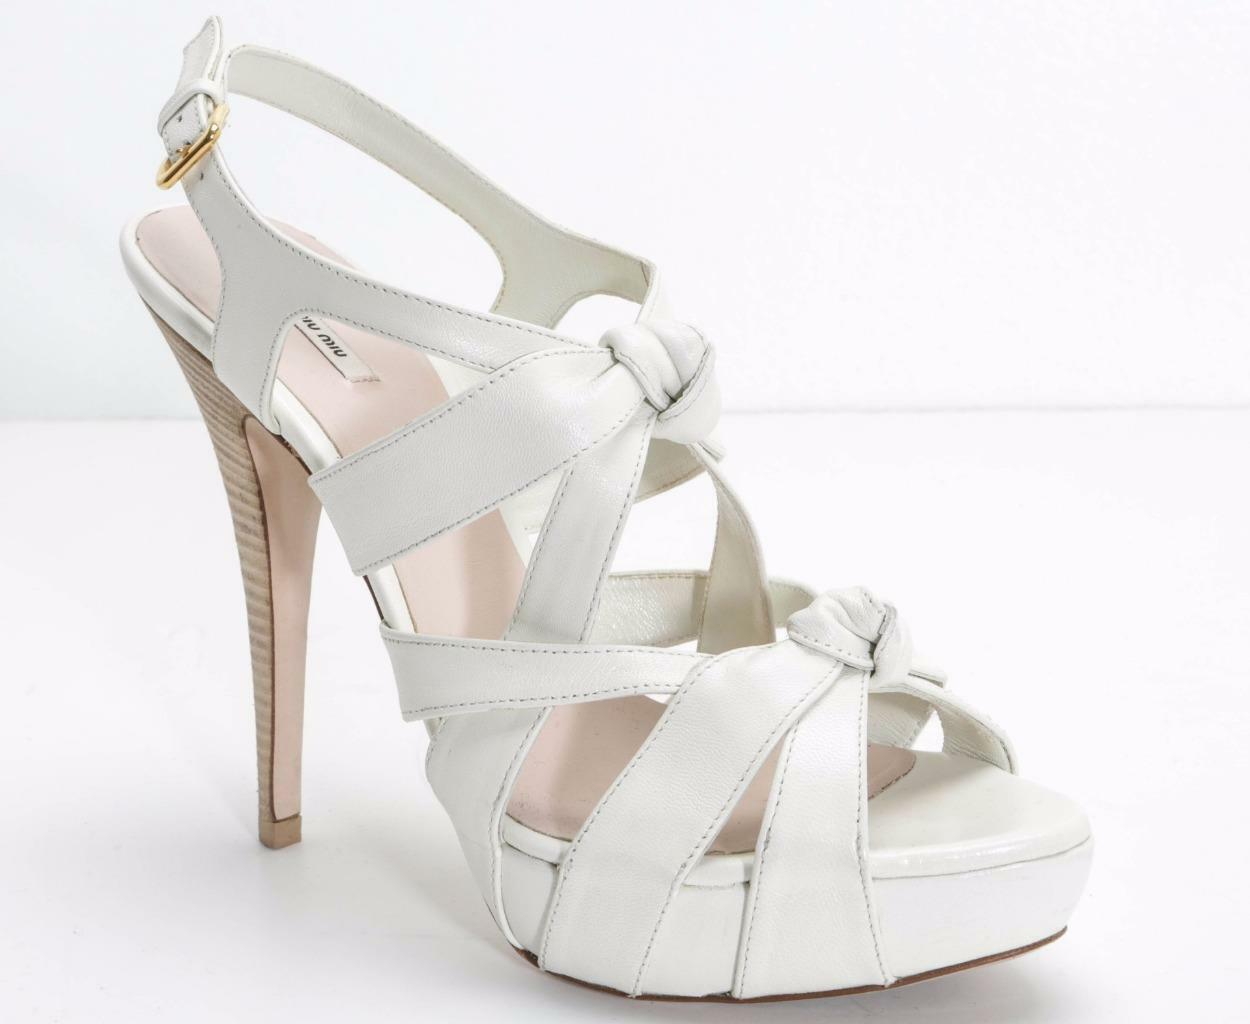 MIU MIU Womens White Leather Knotted Strappy Sandals High-Heel Pumps 10.5-40.5